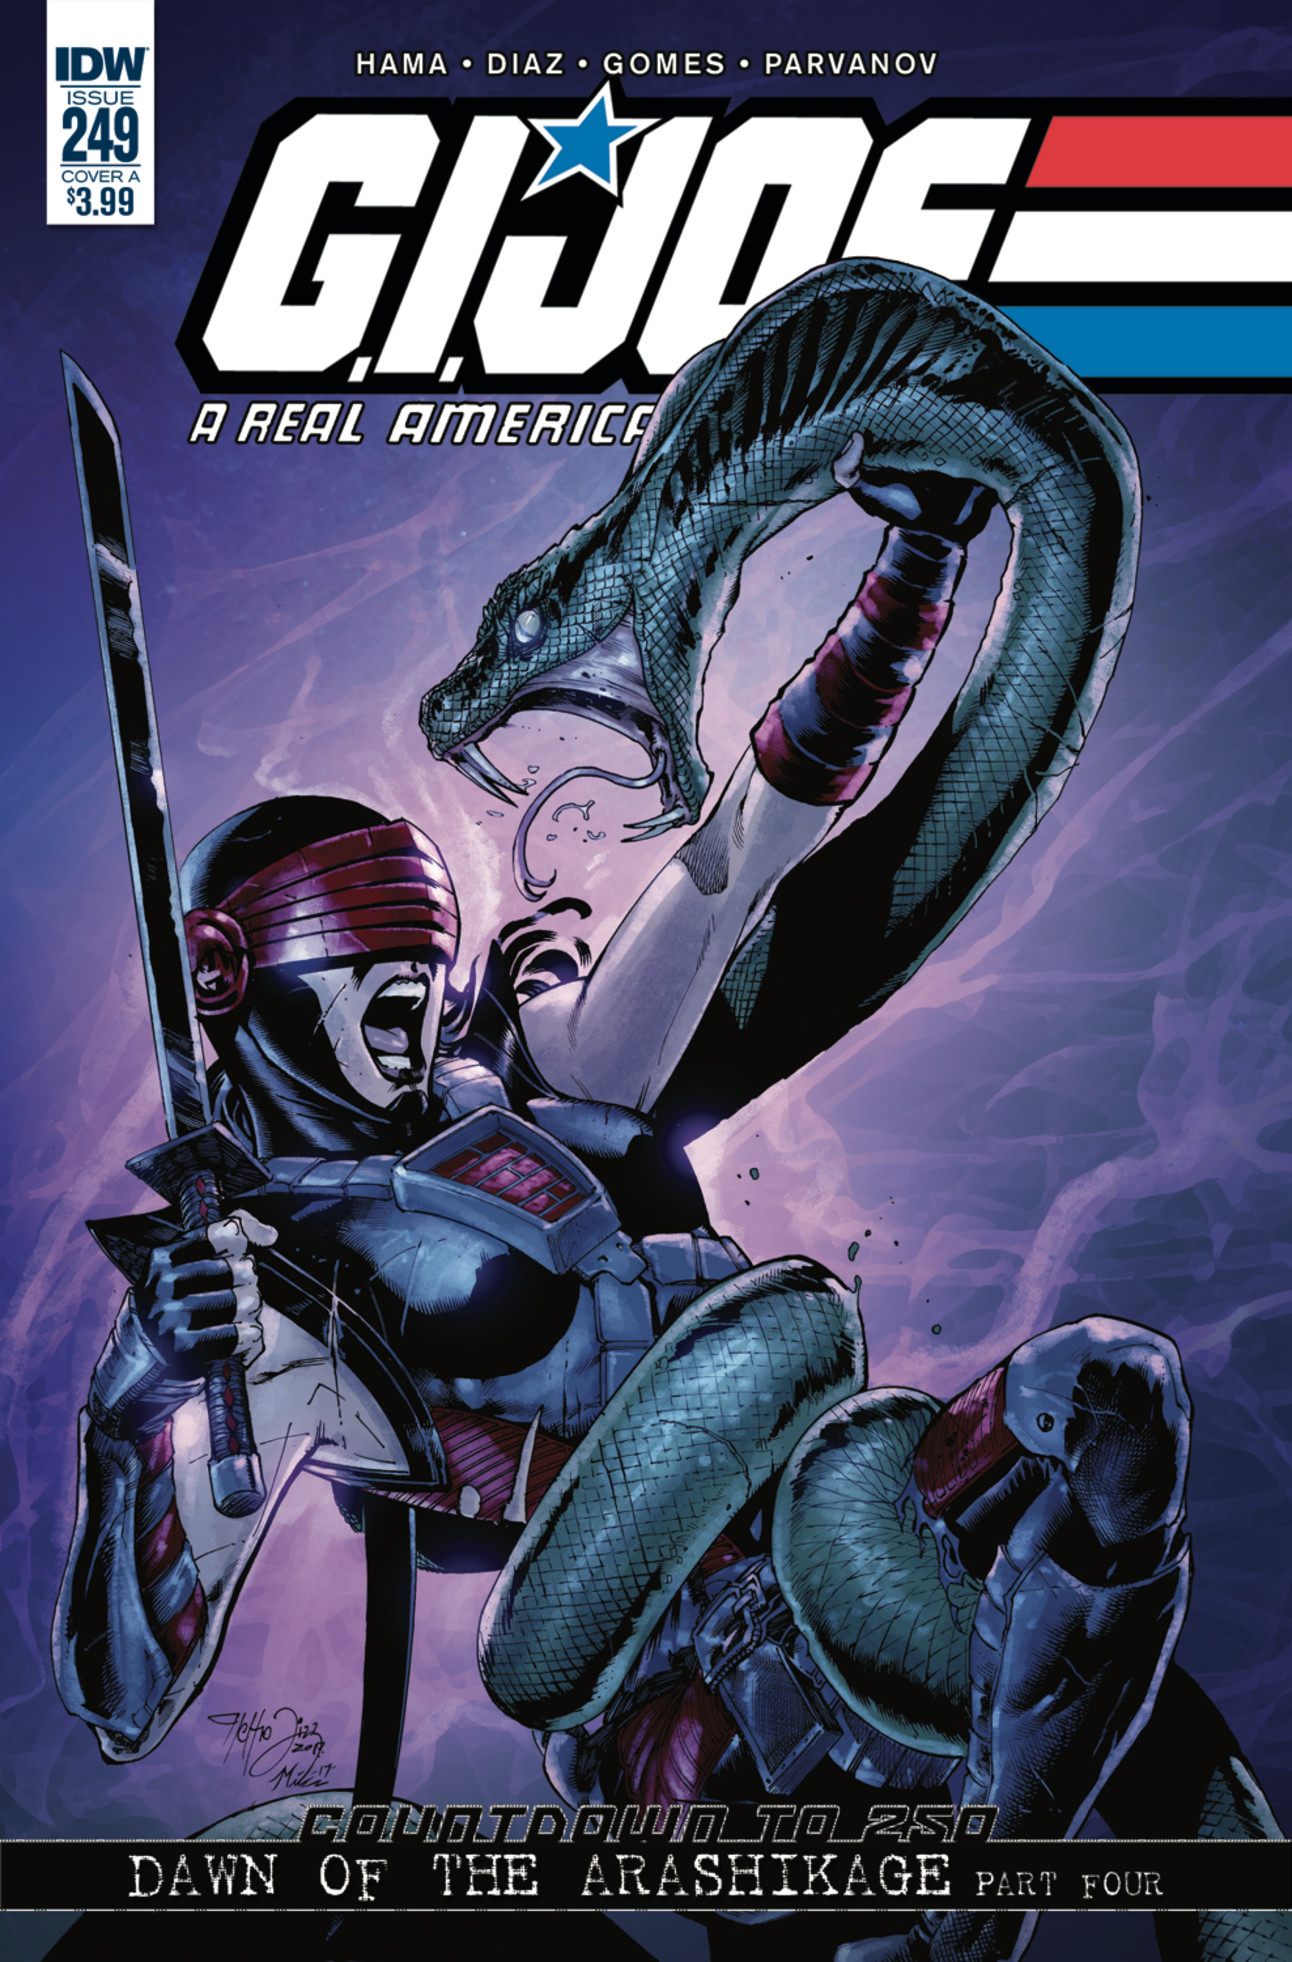 idw_gi_joe_rah_249_cover.jpg